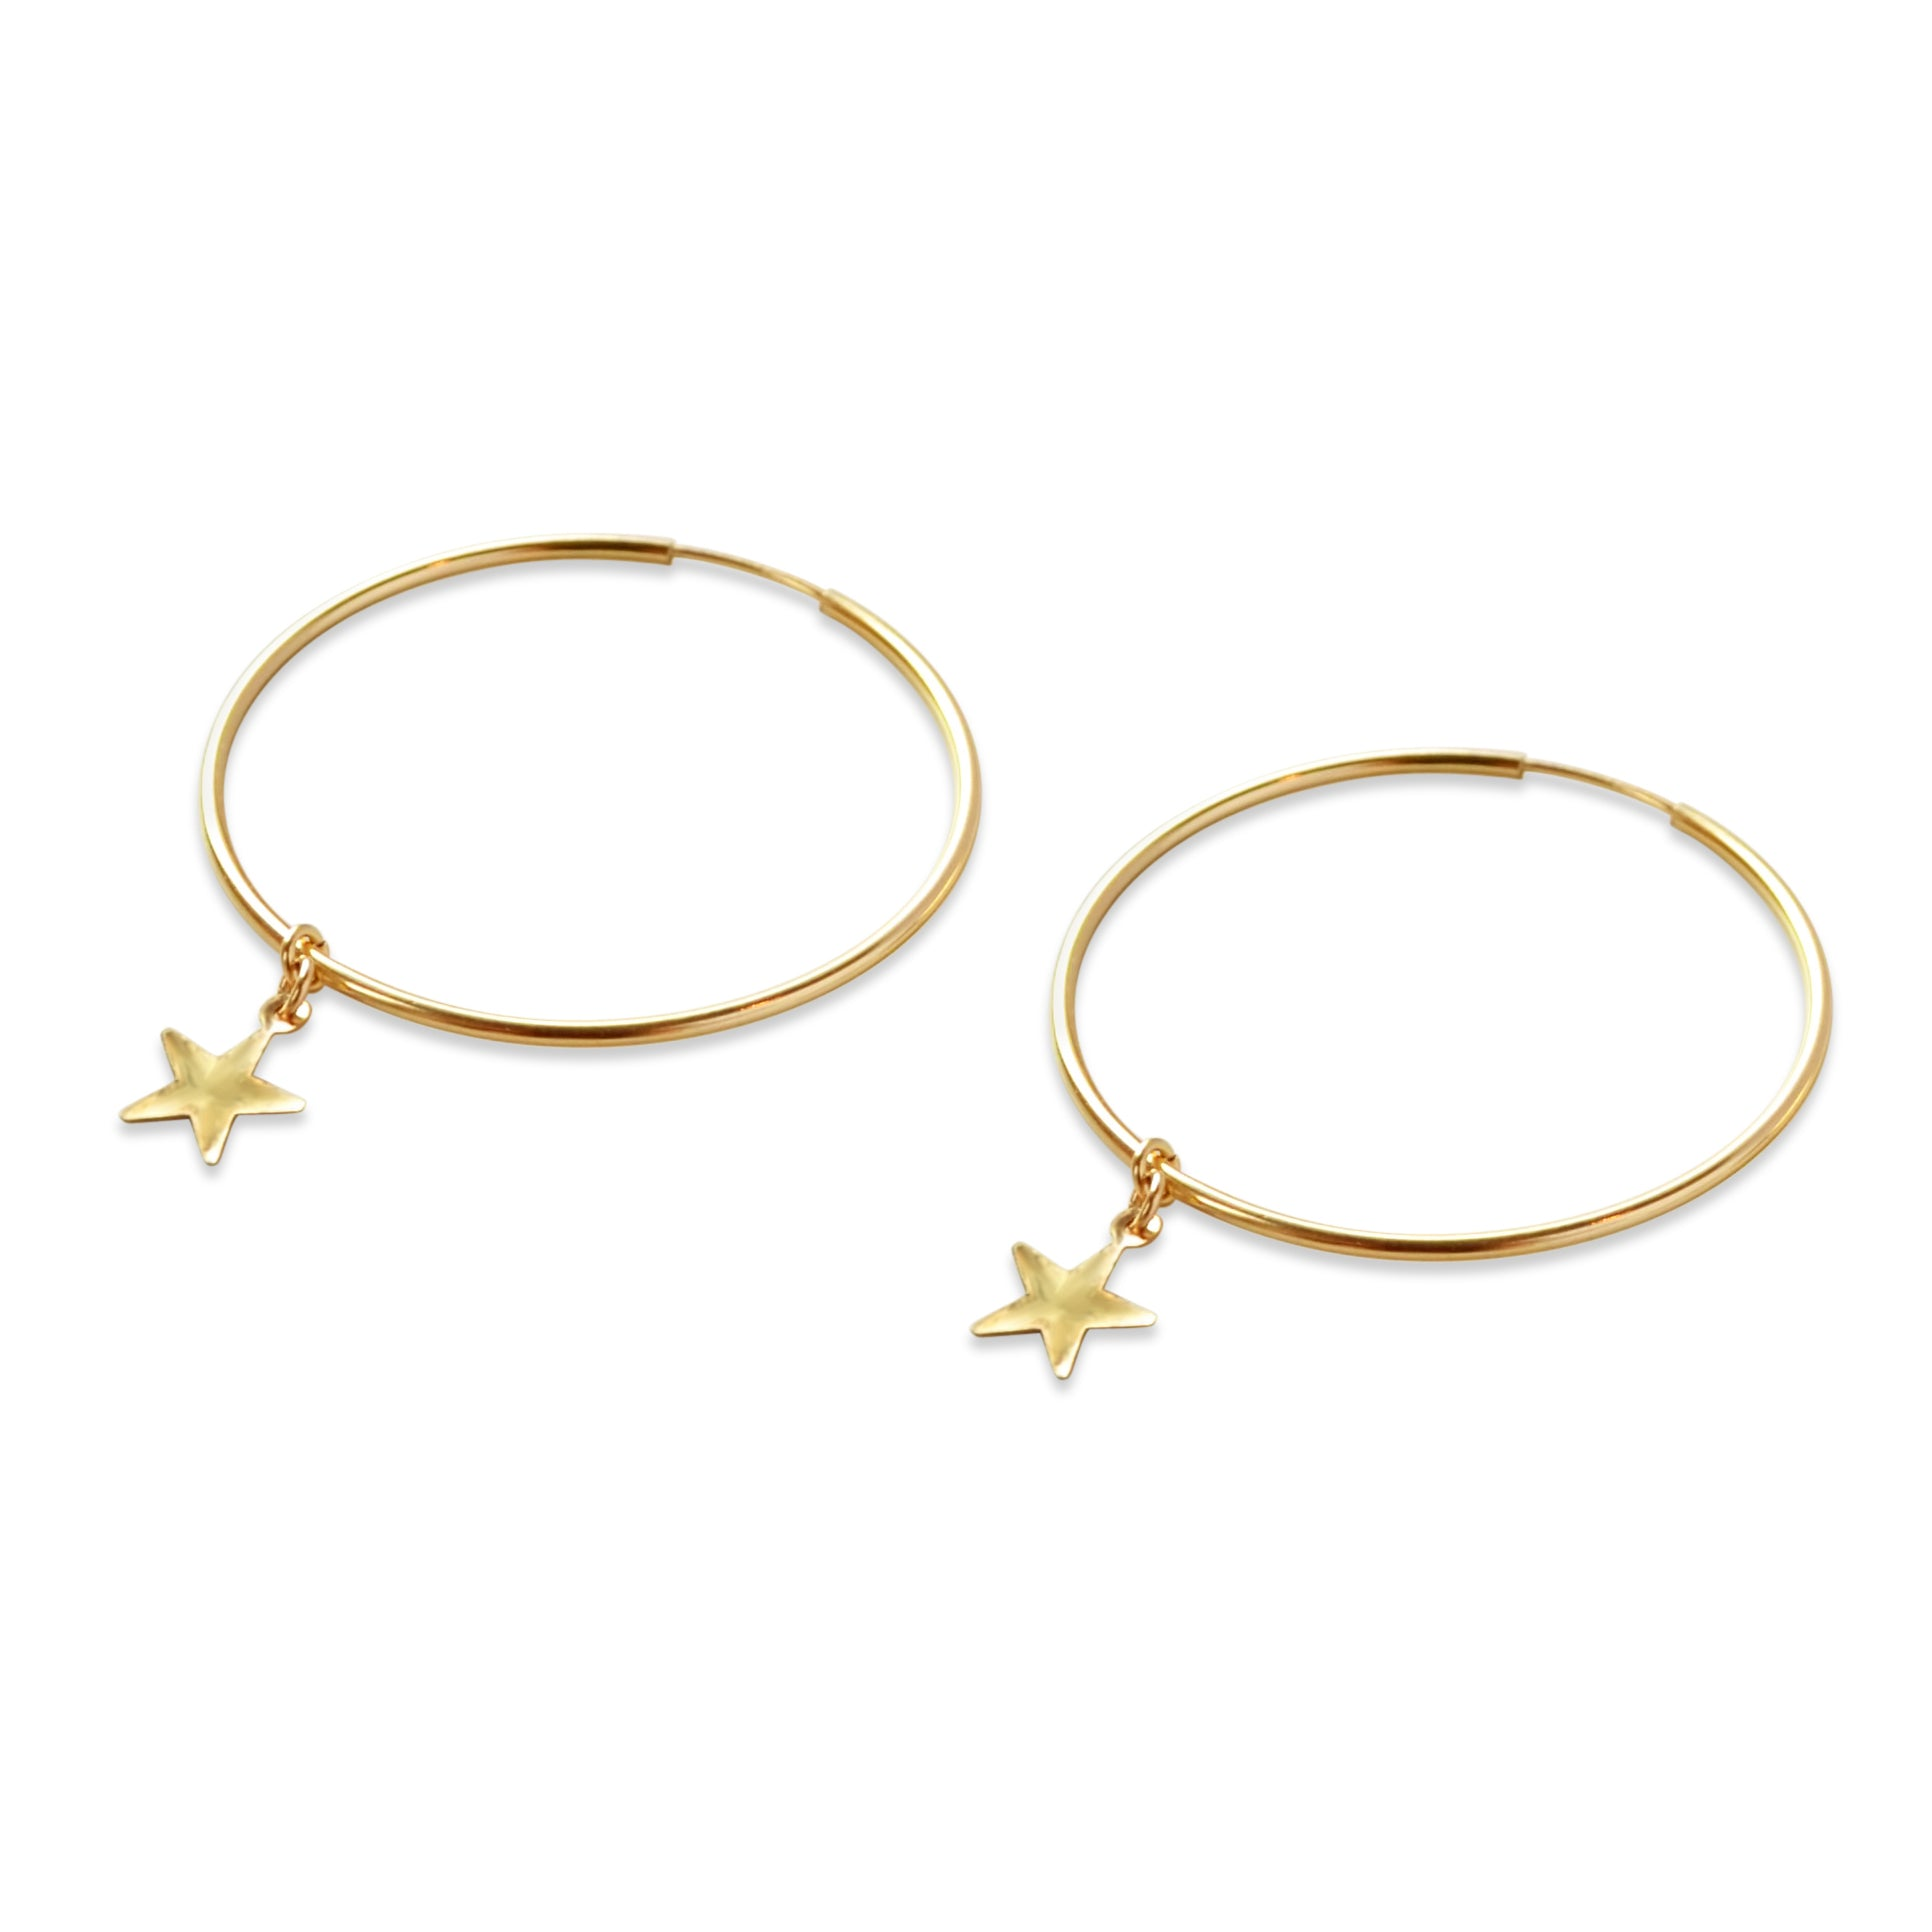 Cuppajyo Starlight Hoop Earrings